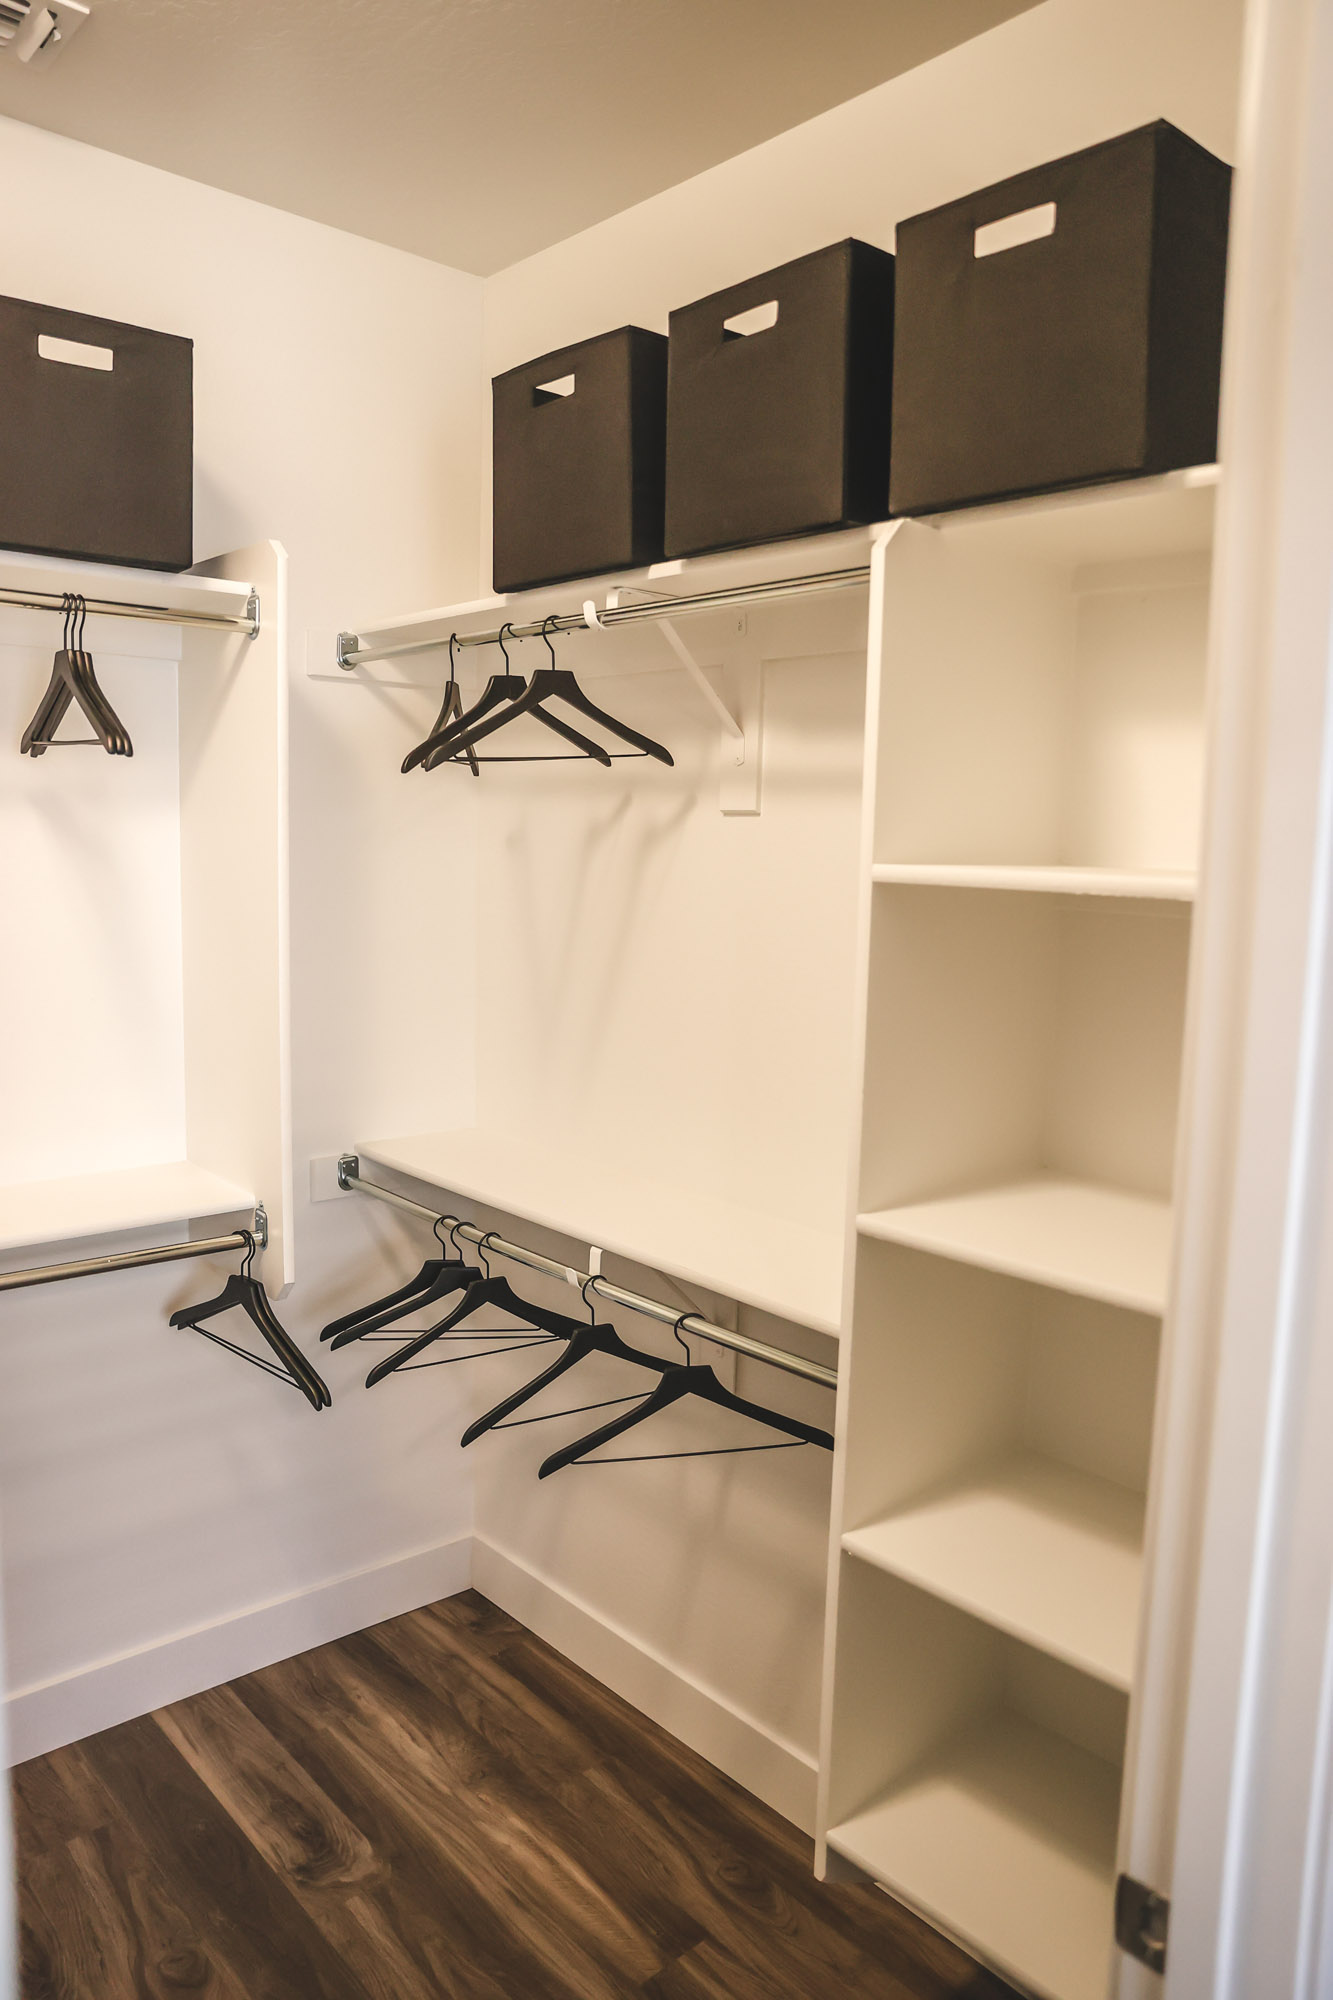 Walk-in Closet at Olive Marketplace Apartments in Glendale, AZ